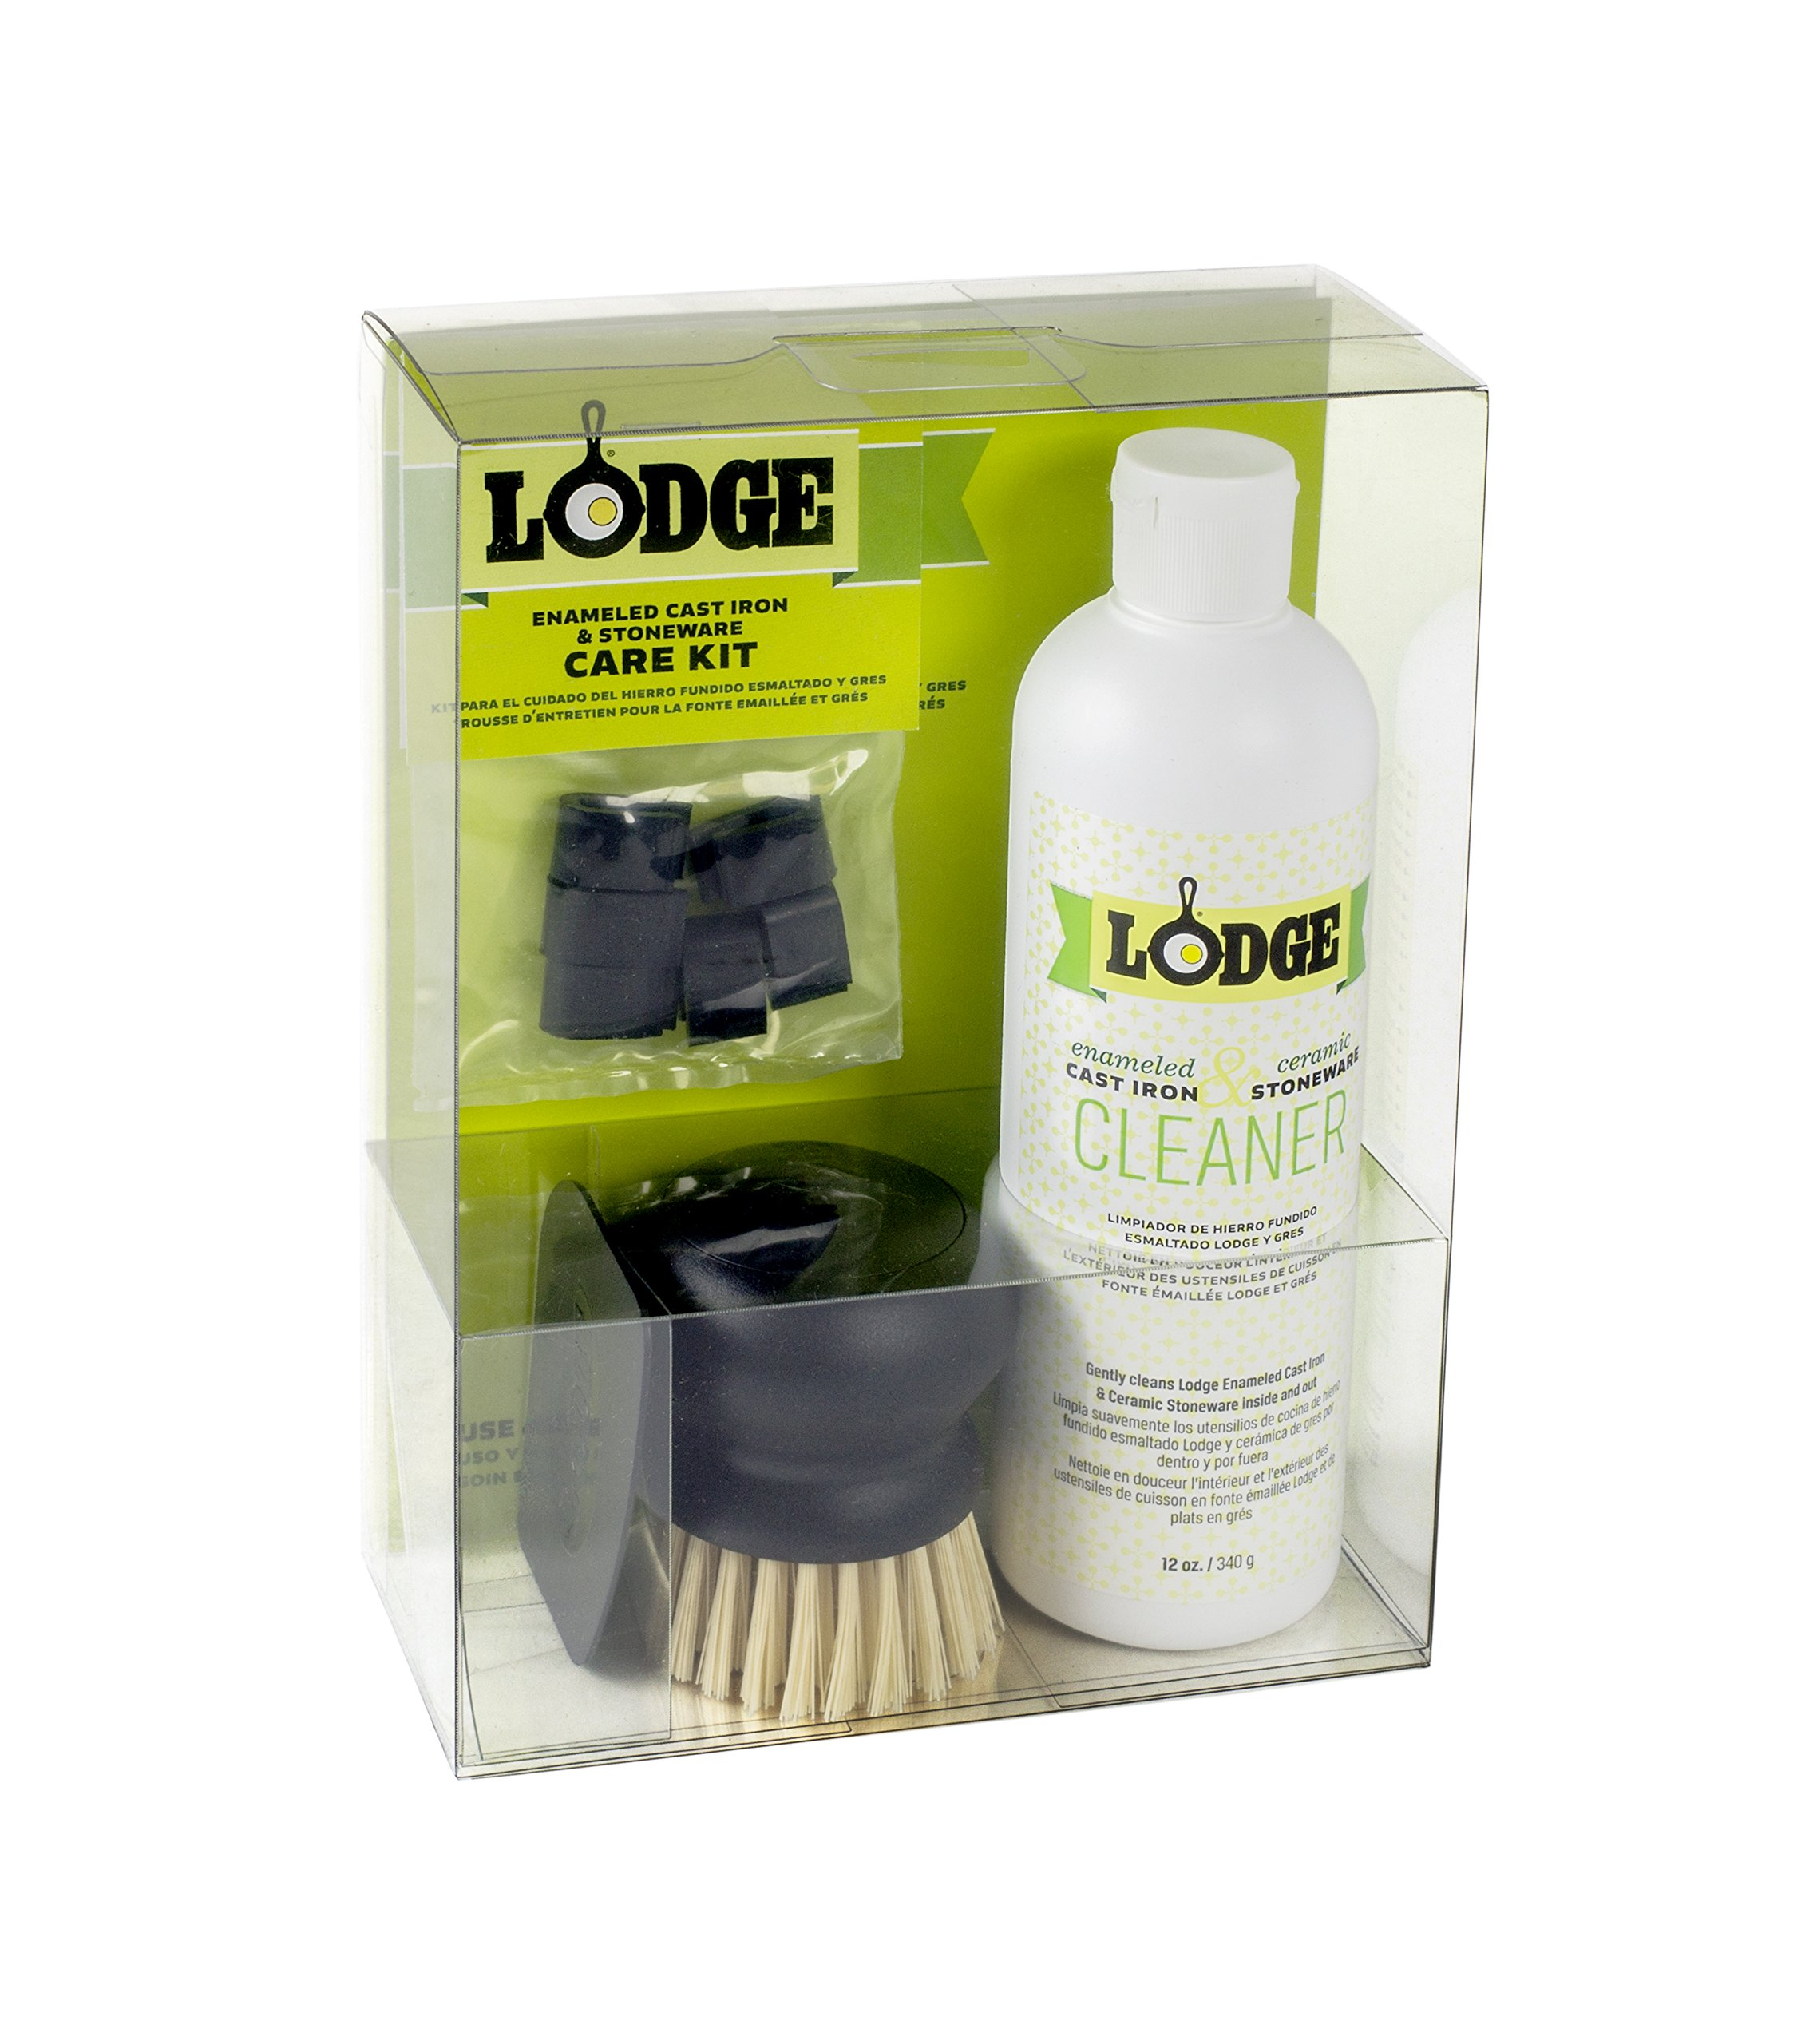 Lodge A-CAREE1 Enameled Cast Iron and Stoneware Care Kit, One Size, Assorted